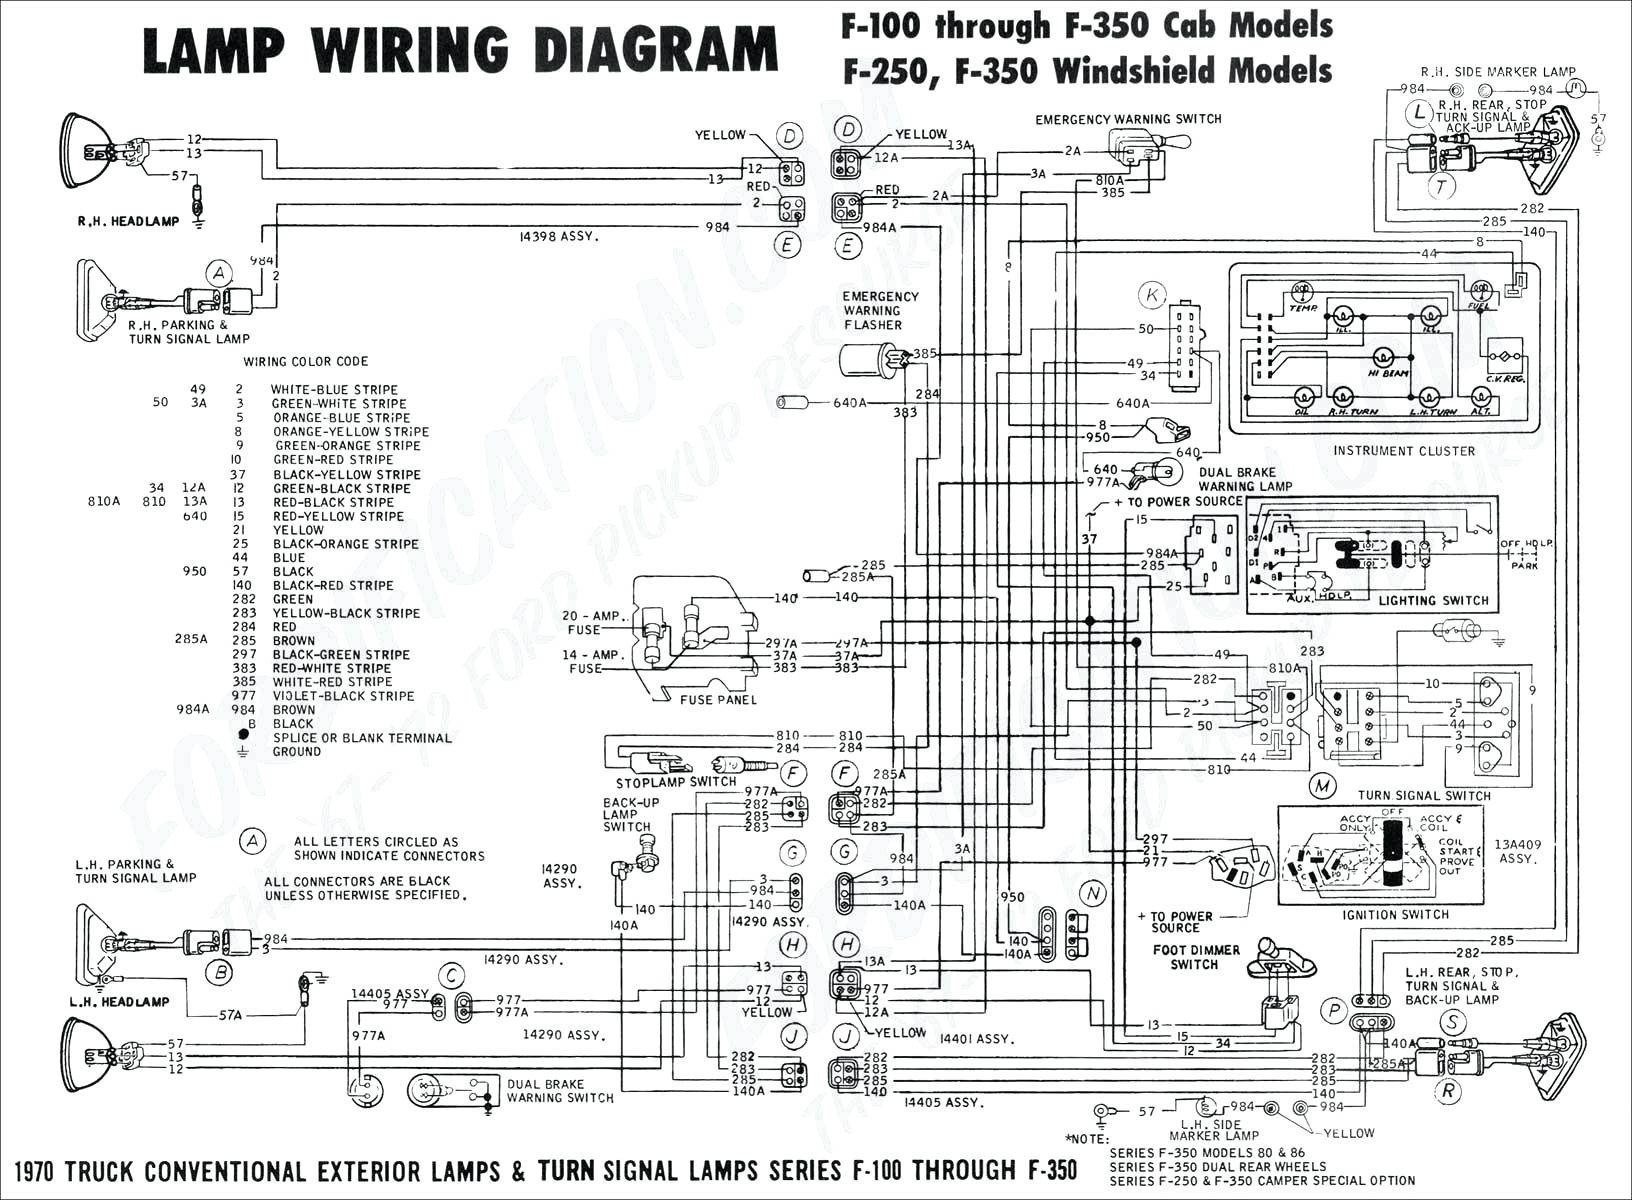 Wire Diagram 2003 Mazda Tribute -Trane Contactor Wiring Diagram | Begeboy Wiring  Diagram SourceBegeboy Wiring Diagram Source